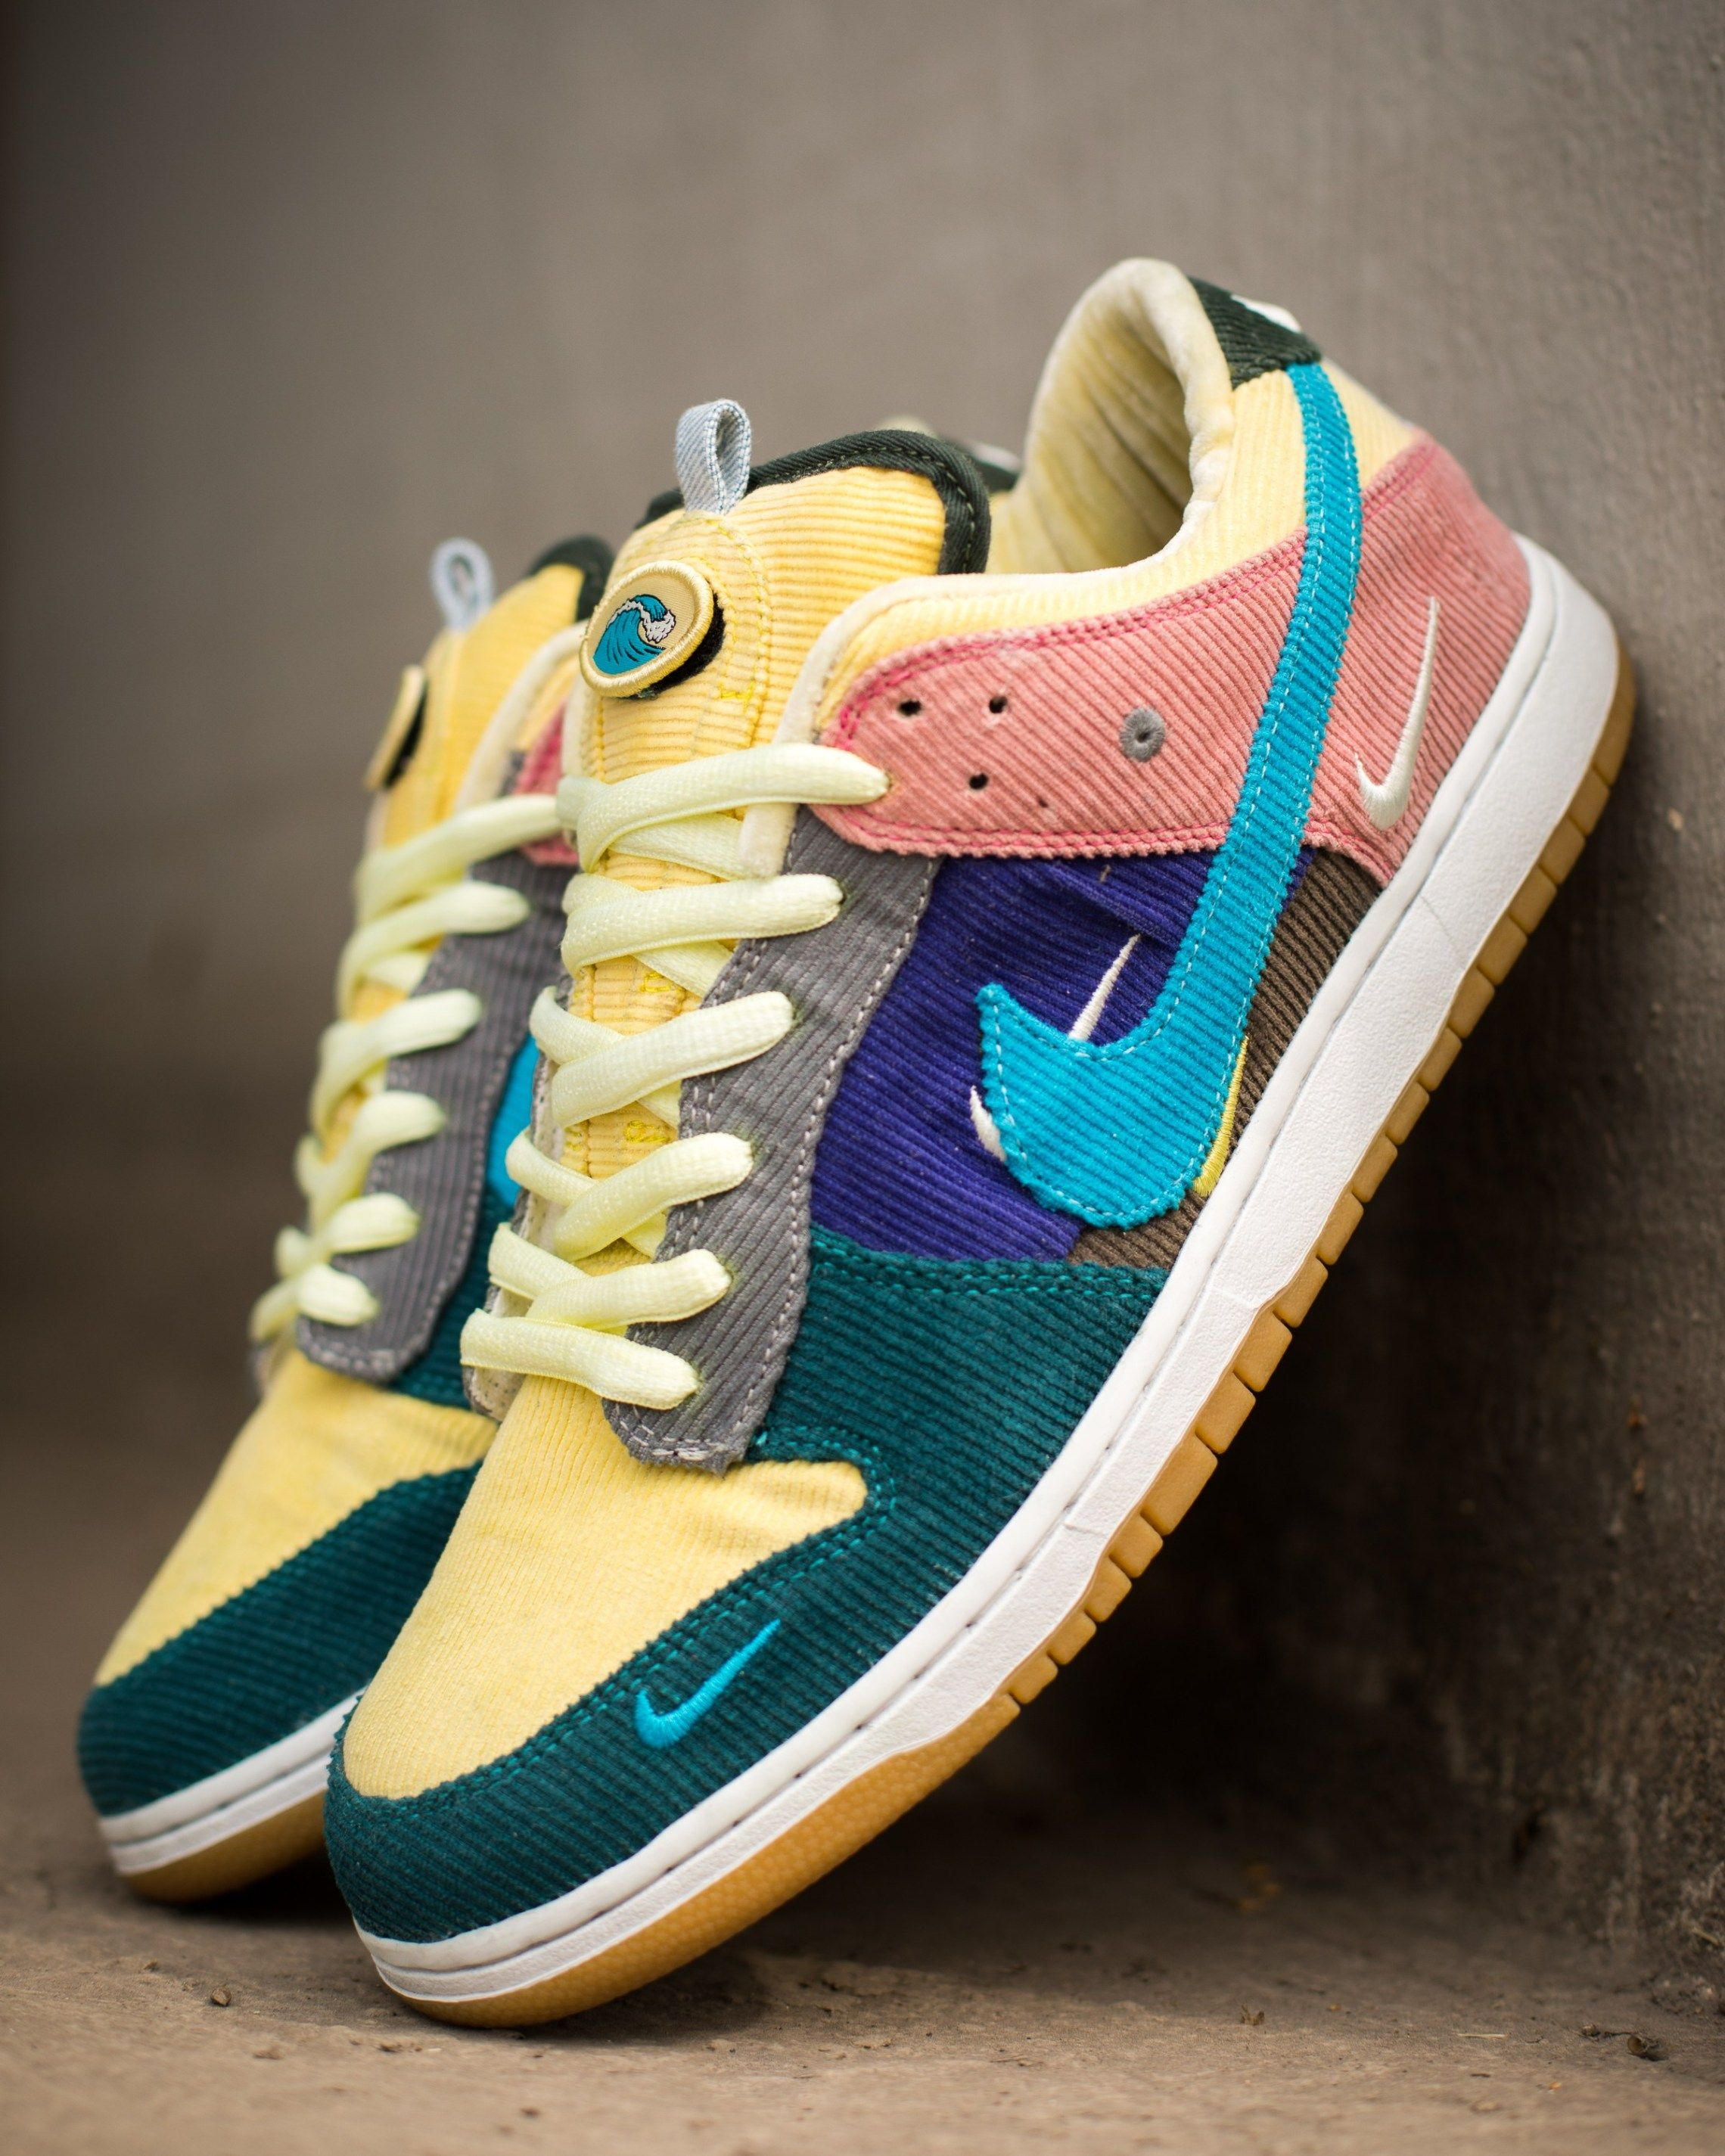 Sean Wotherspoon Styled SB Dunk Custom